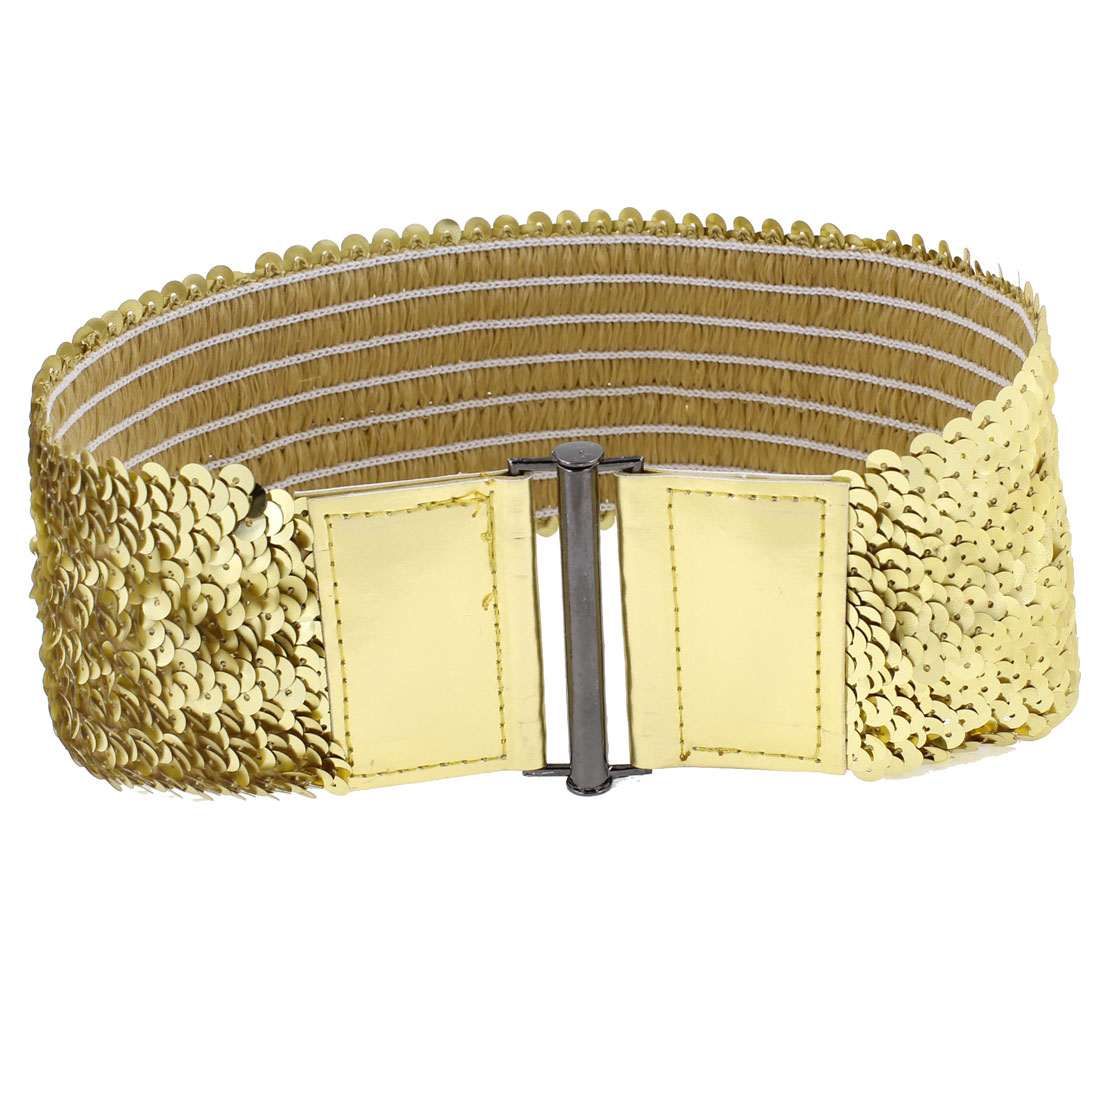 Sequin Decor Interlocking Buckle Waist Belt Waistband Gold Tone for Ladies